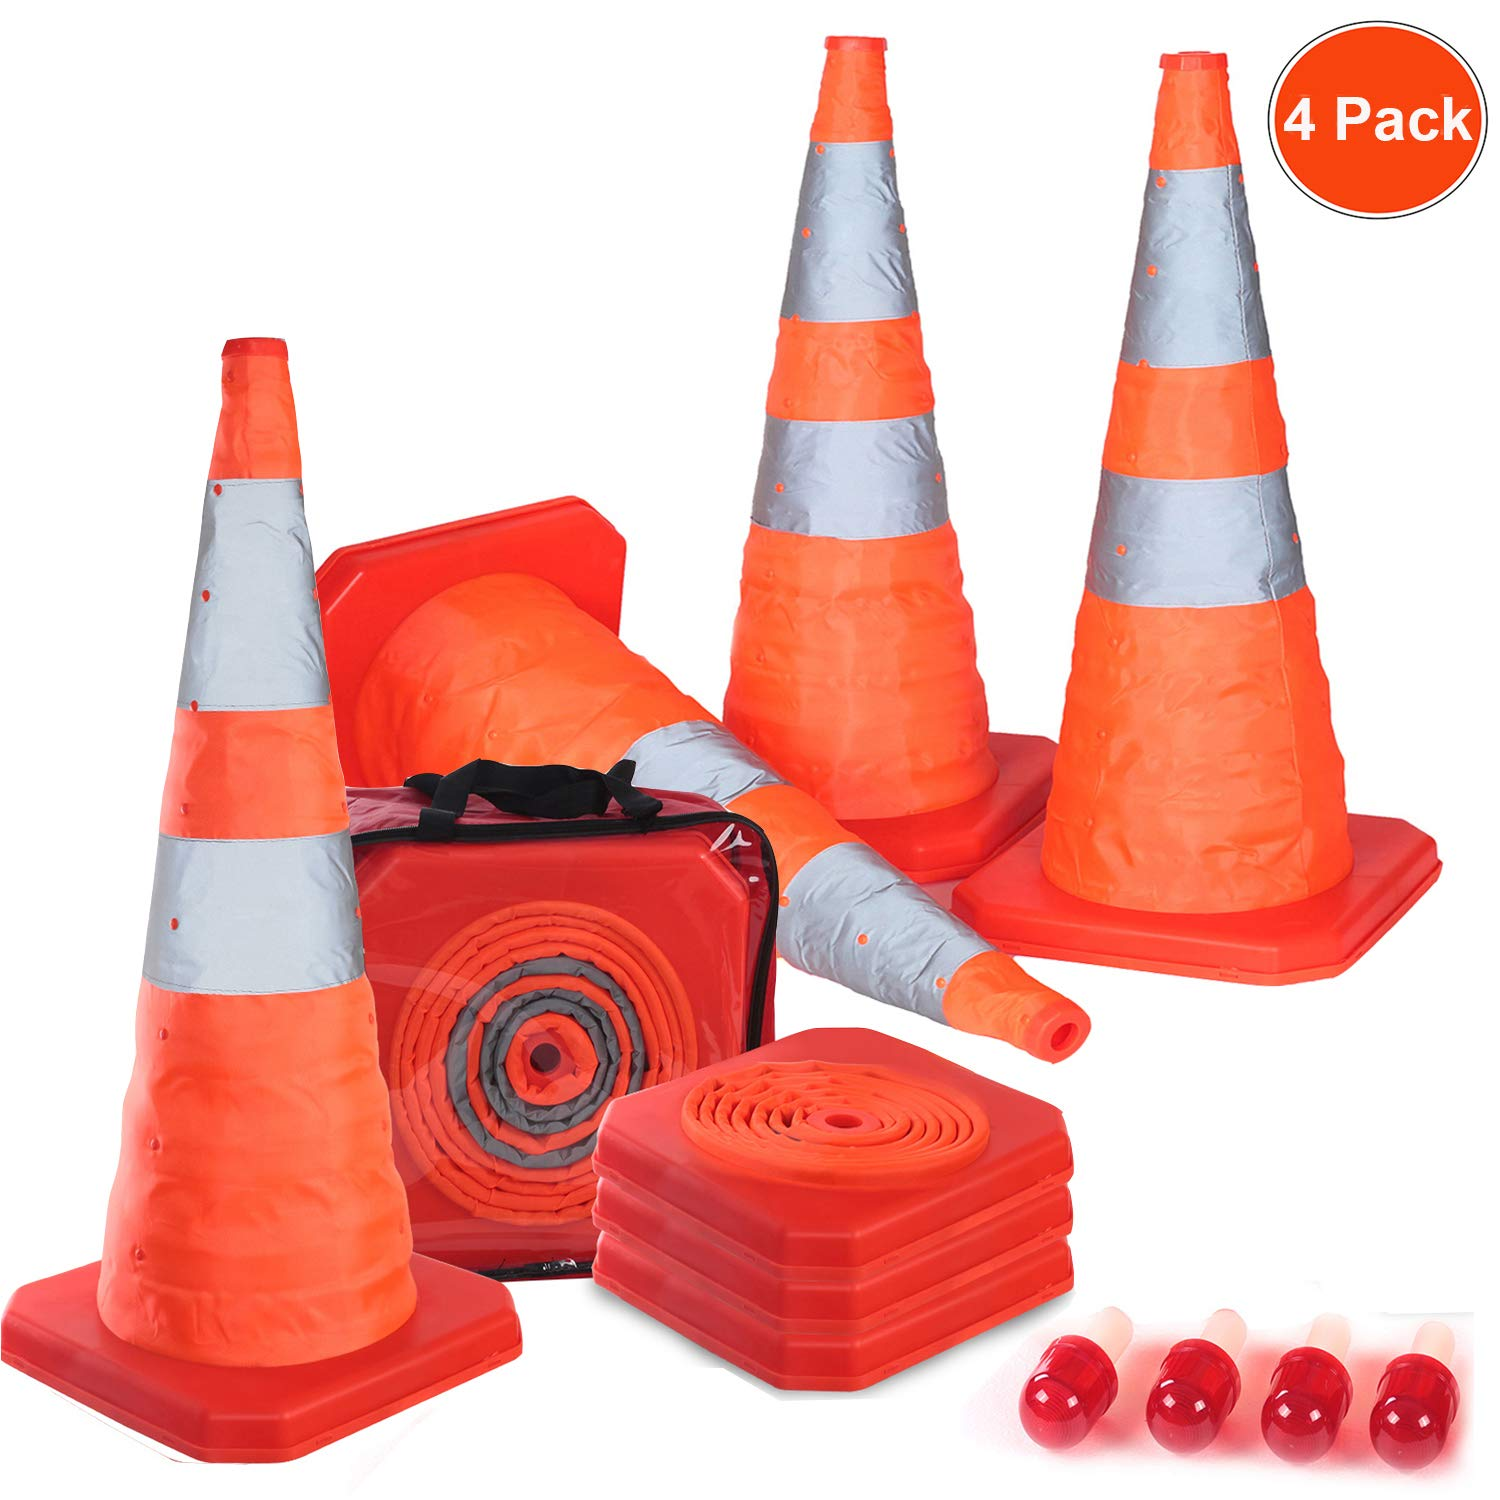 Reliancer 4PC 27.6'' Collapsible Traffic Cones with Nighttime LED Lights Pop up Safety Road Parking Cones Weighted Hazard Cones Construction cones Fluorescent Orange w/2 Reflective Silver Strips Collar